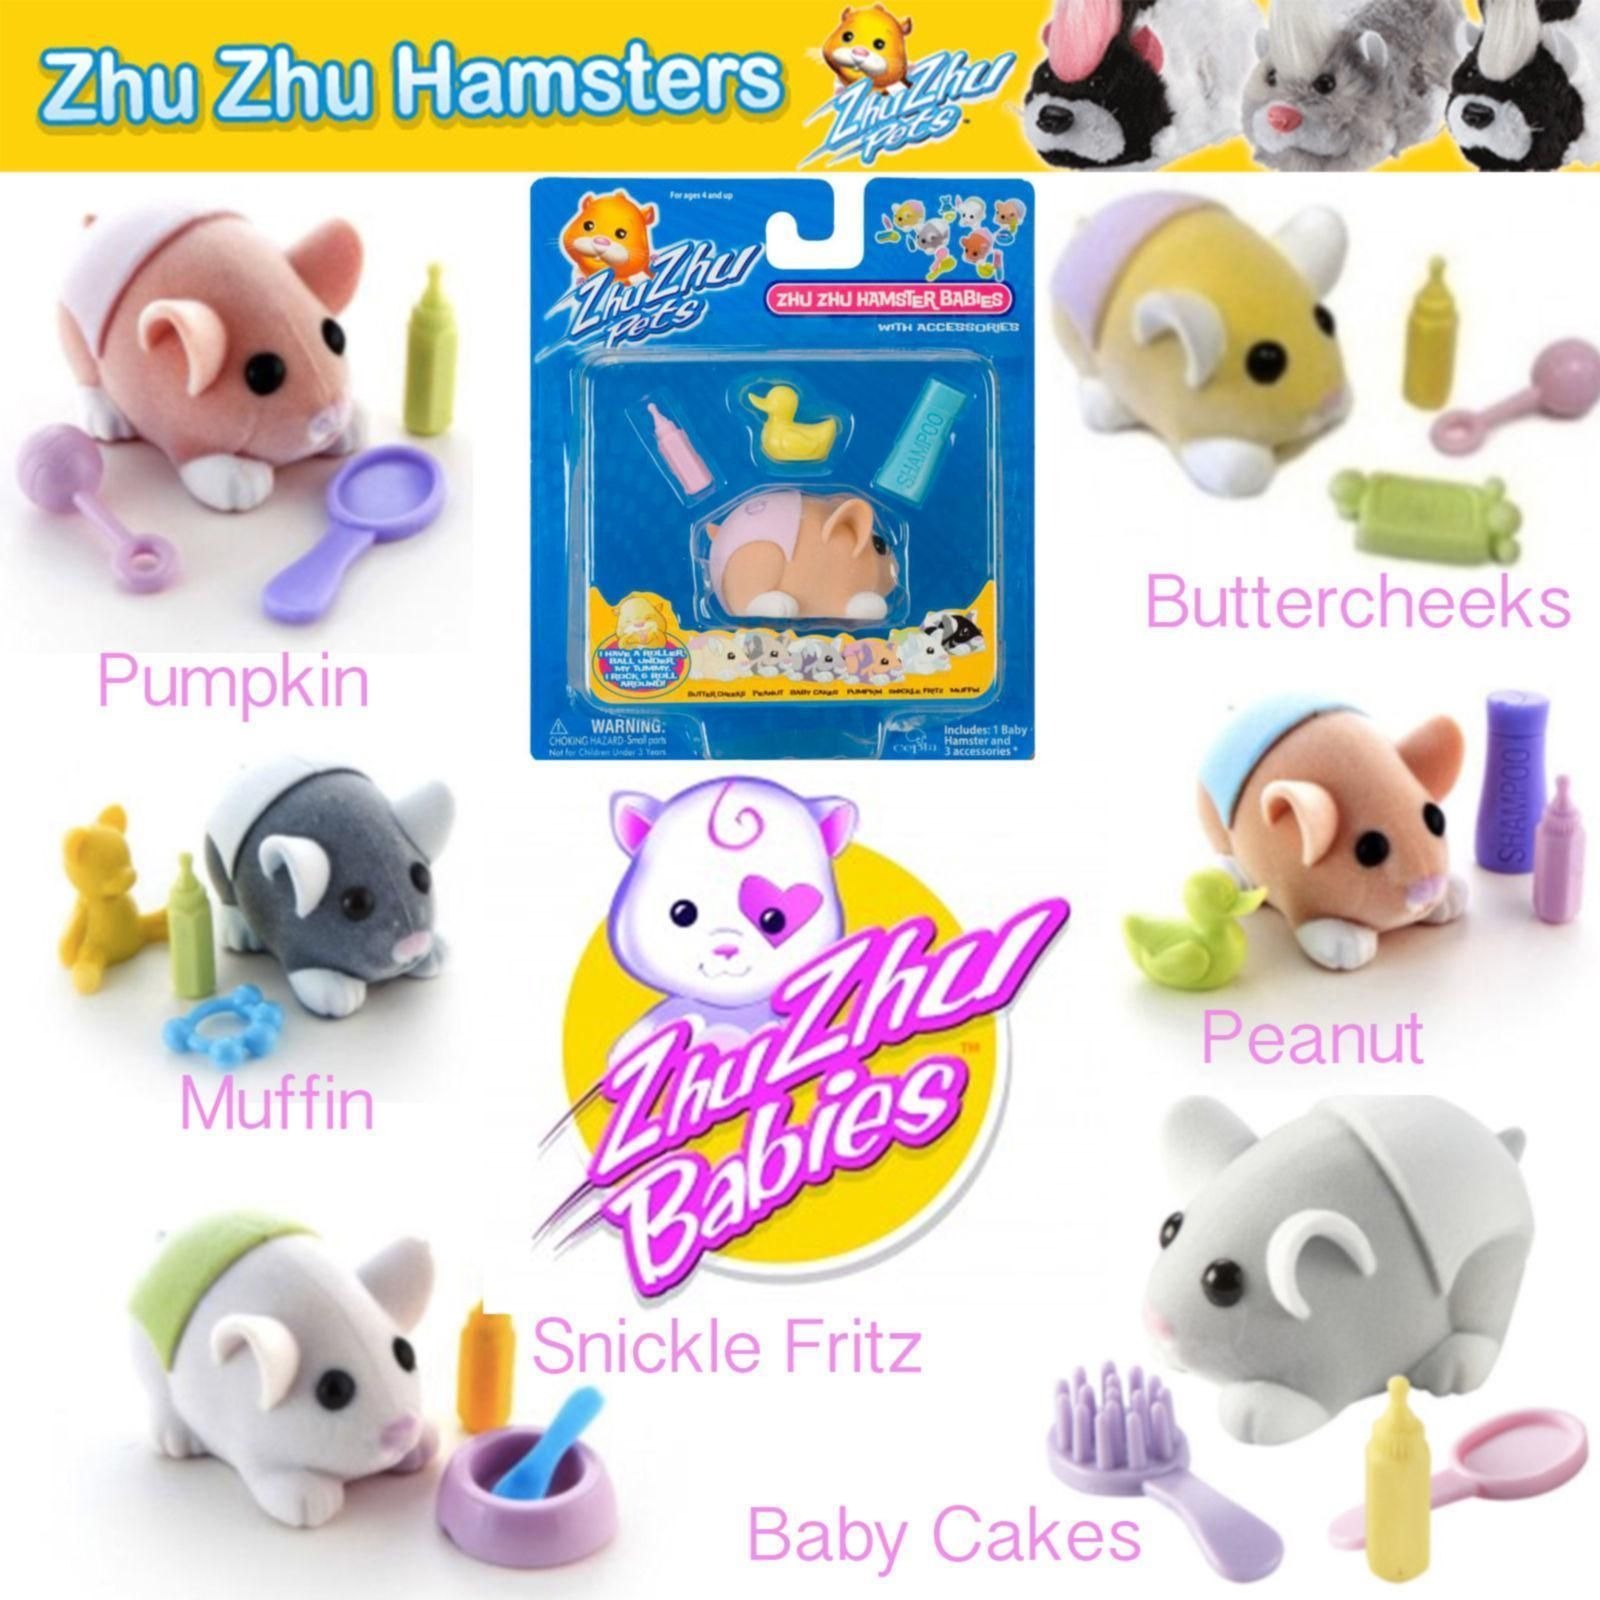 Zhu Zhu Pets Stuffed Animal Plush Toy Play Accessories Ebay